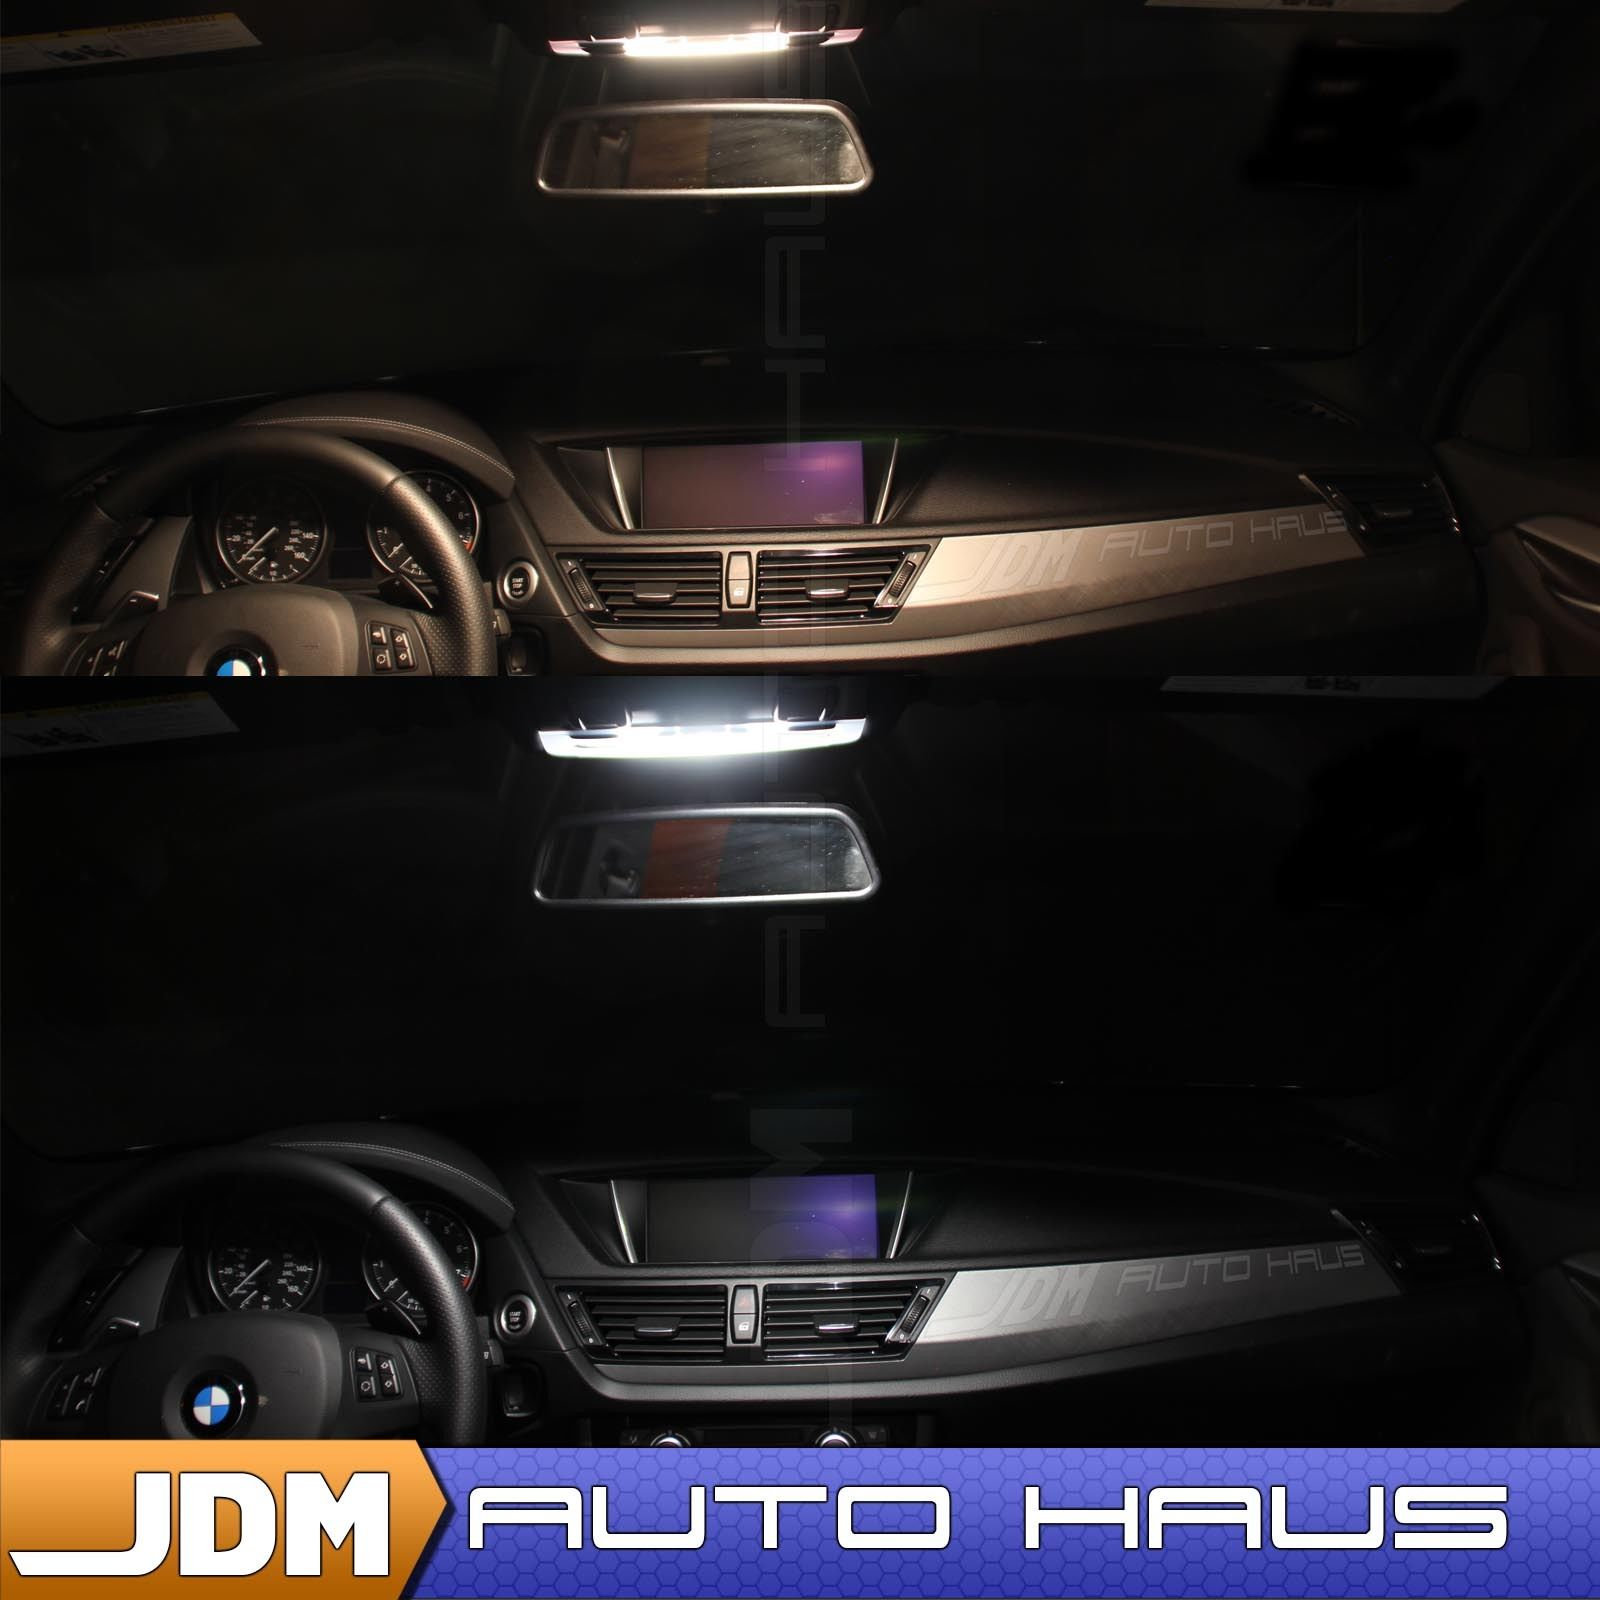 Audi A4 2015 Led Lights: Awesome 18x White Interior LED Lights Package Kit For 2009